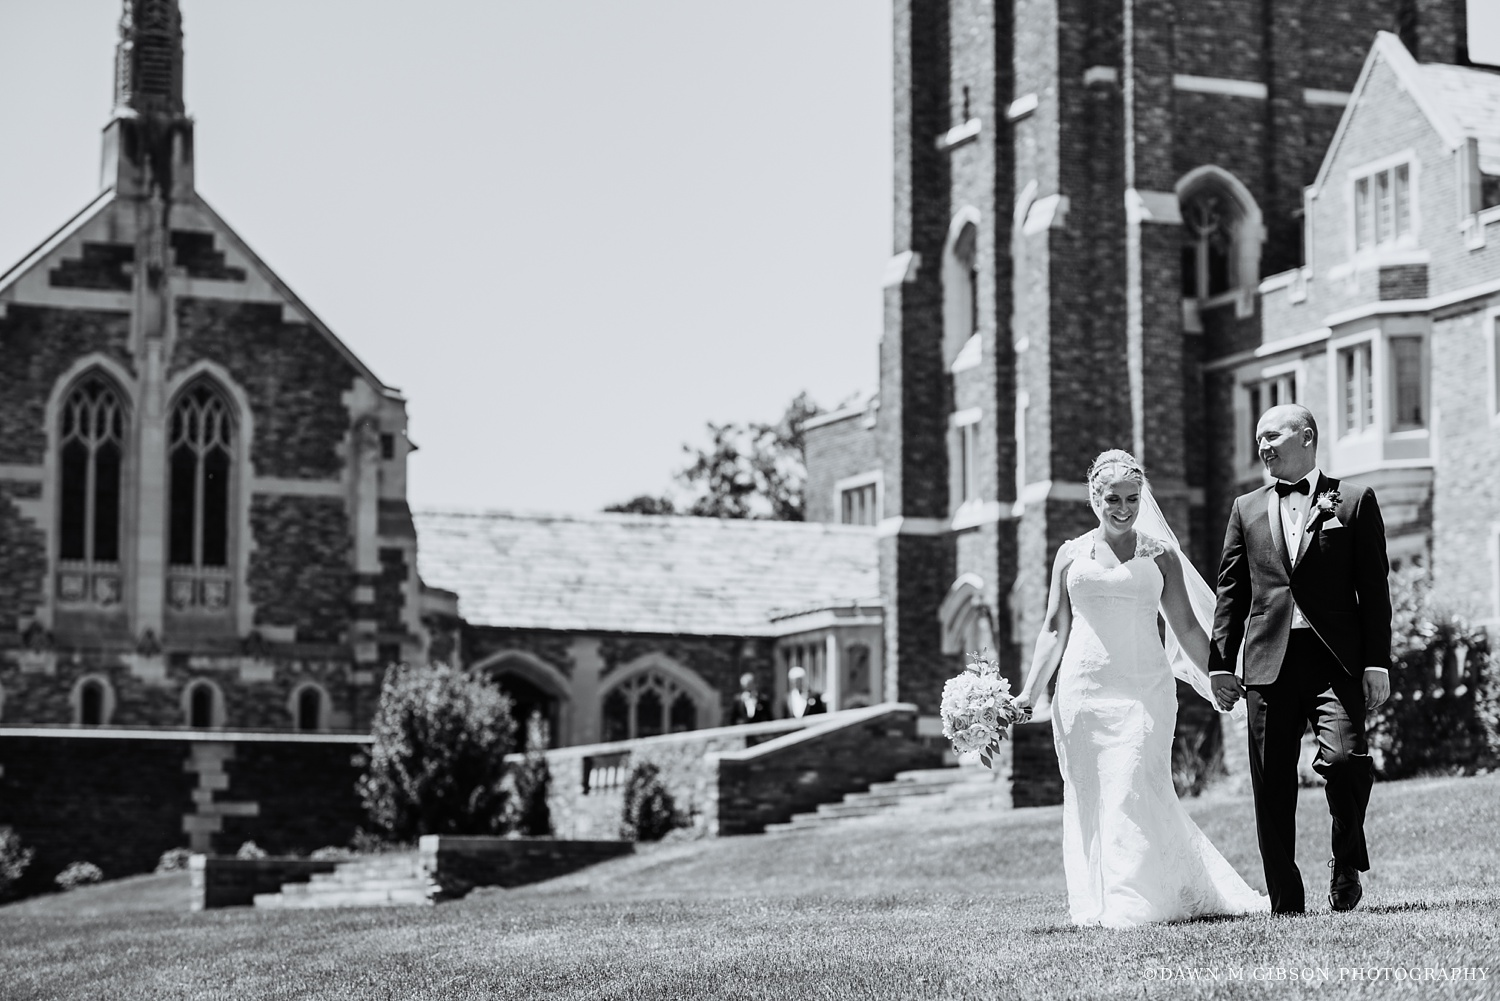 buffalo_wny_rochester_wedding_photographer_dawnmgibsonphotography_strathallan_colgate_rochester_divinity_rochester_wedding_venues_0022.jpg